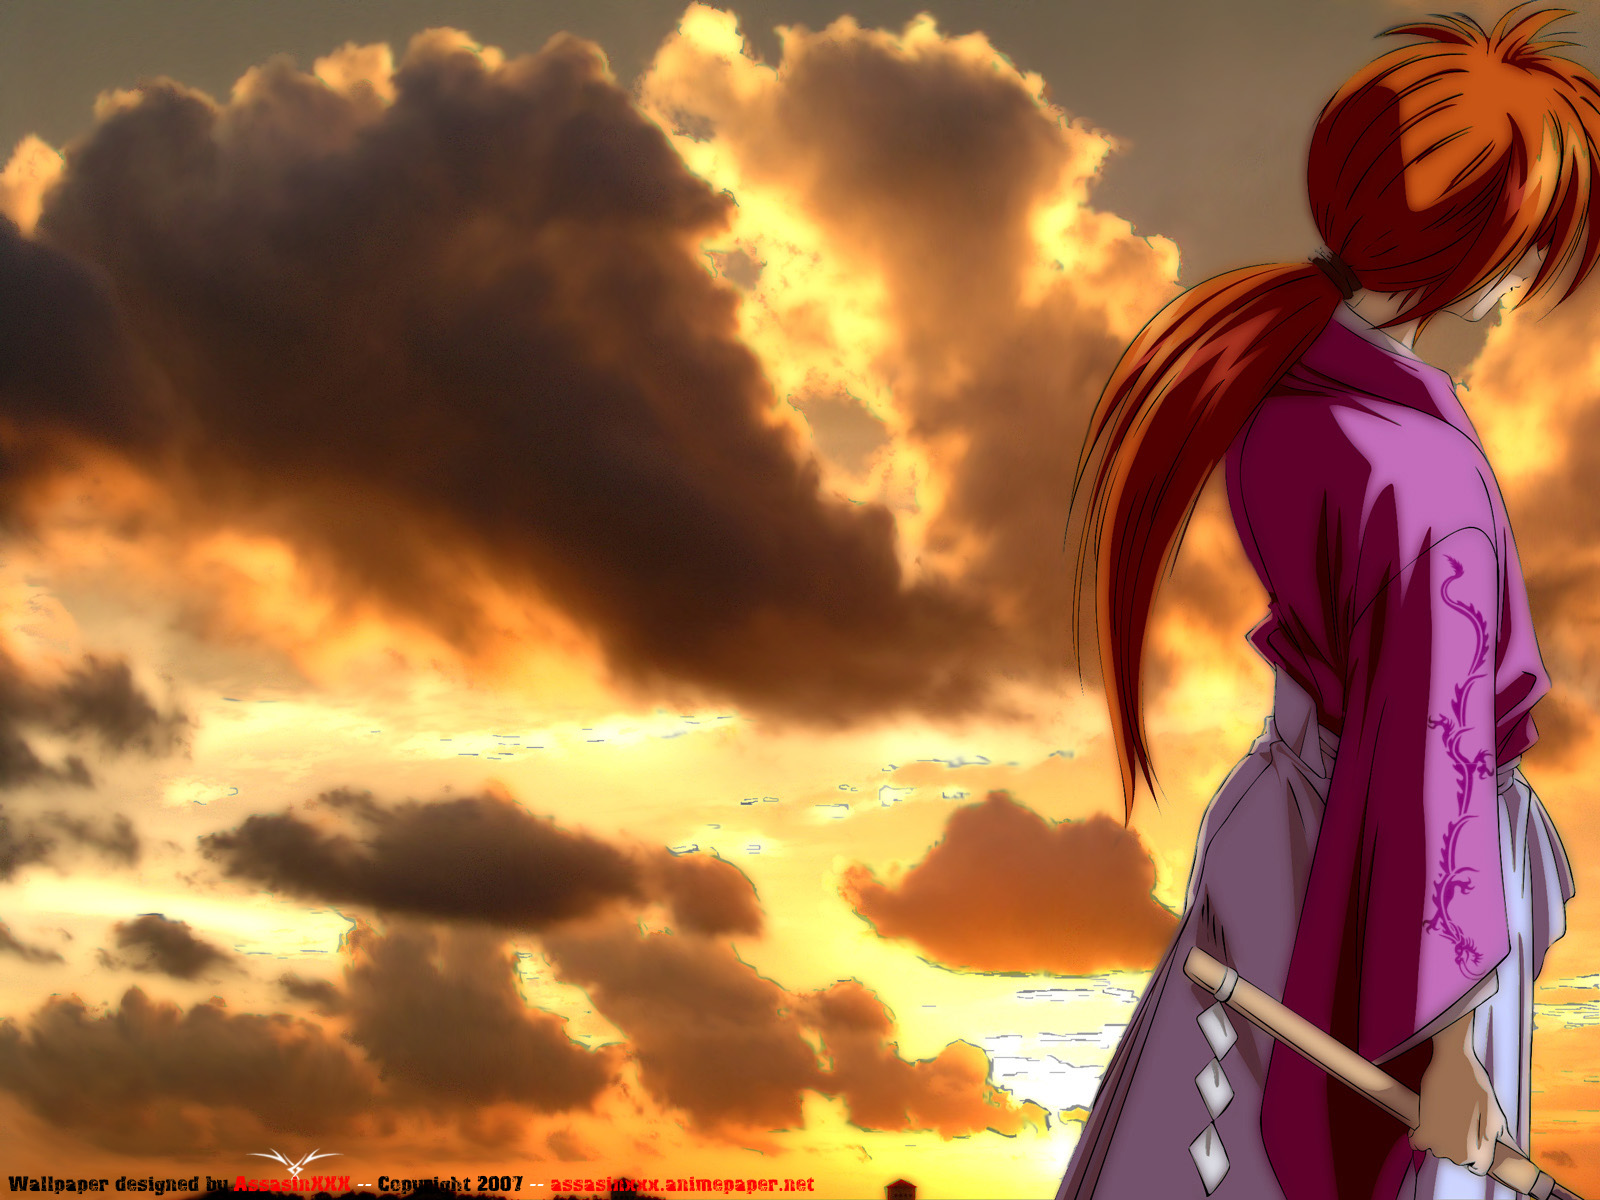 rurouni kenshin wallpaper - photo #1